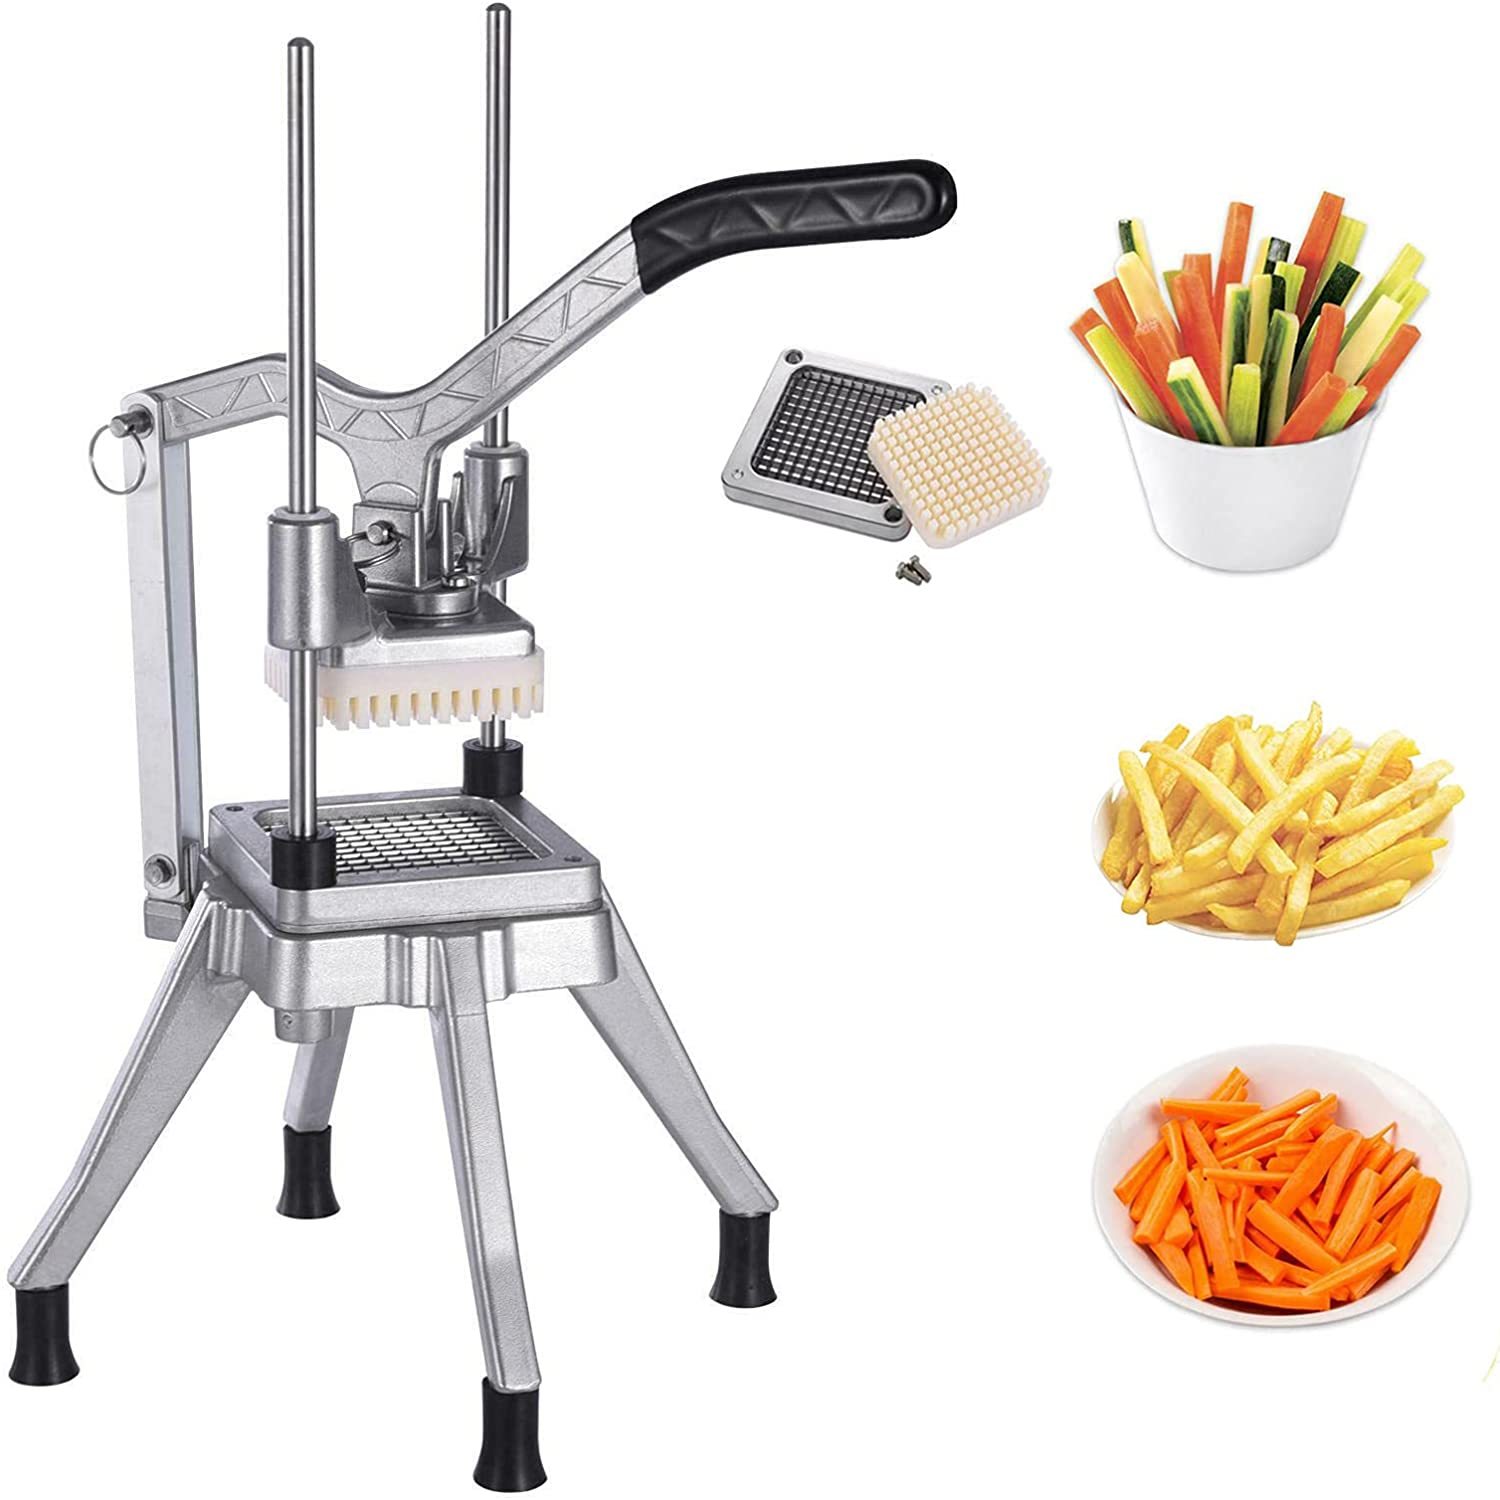 FlySkip Commercial Vegetable Dicer Stainless Steel Quick Commercial Vegetable Chopper with 3/8